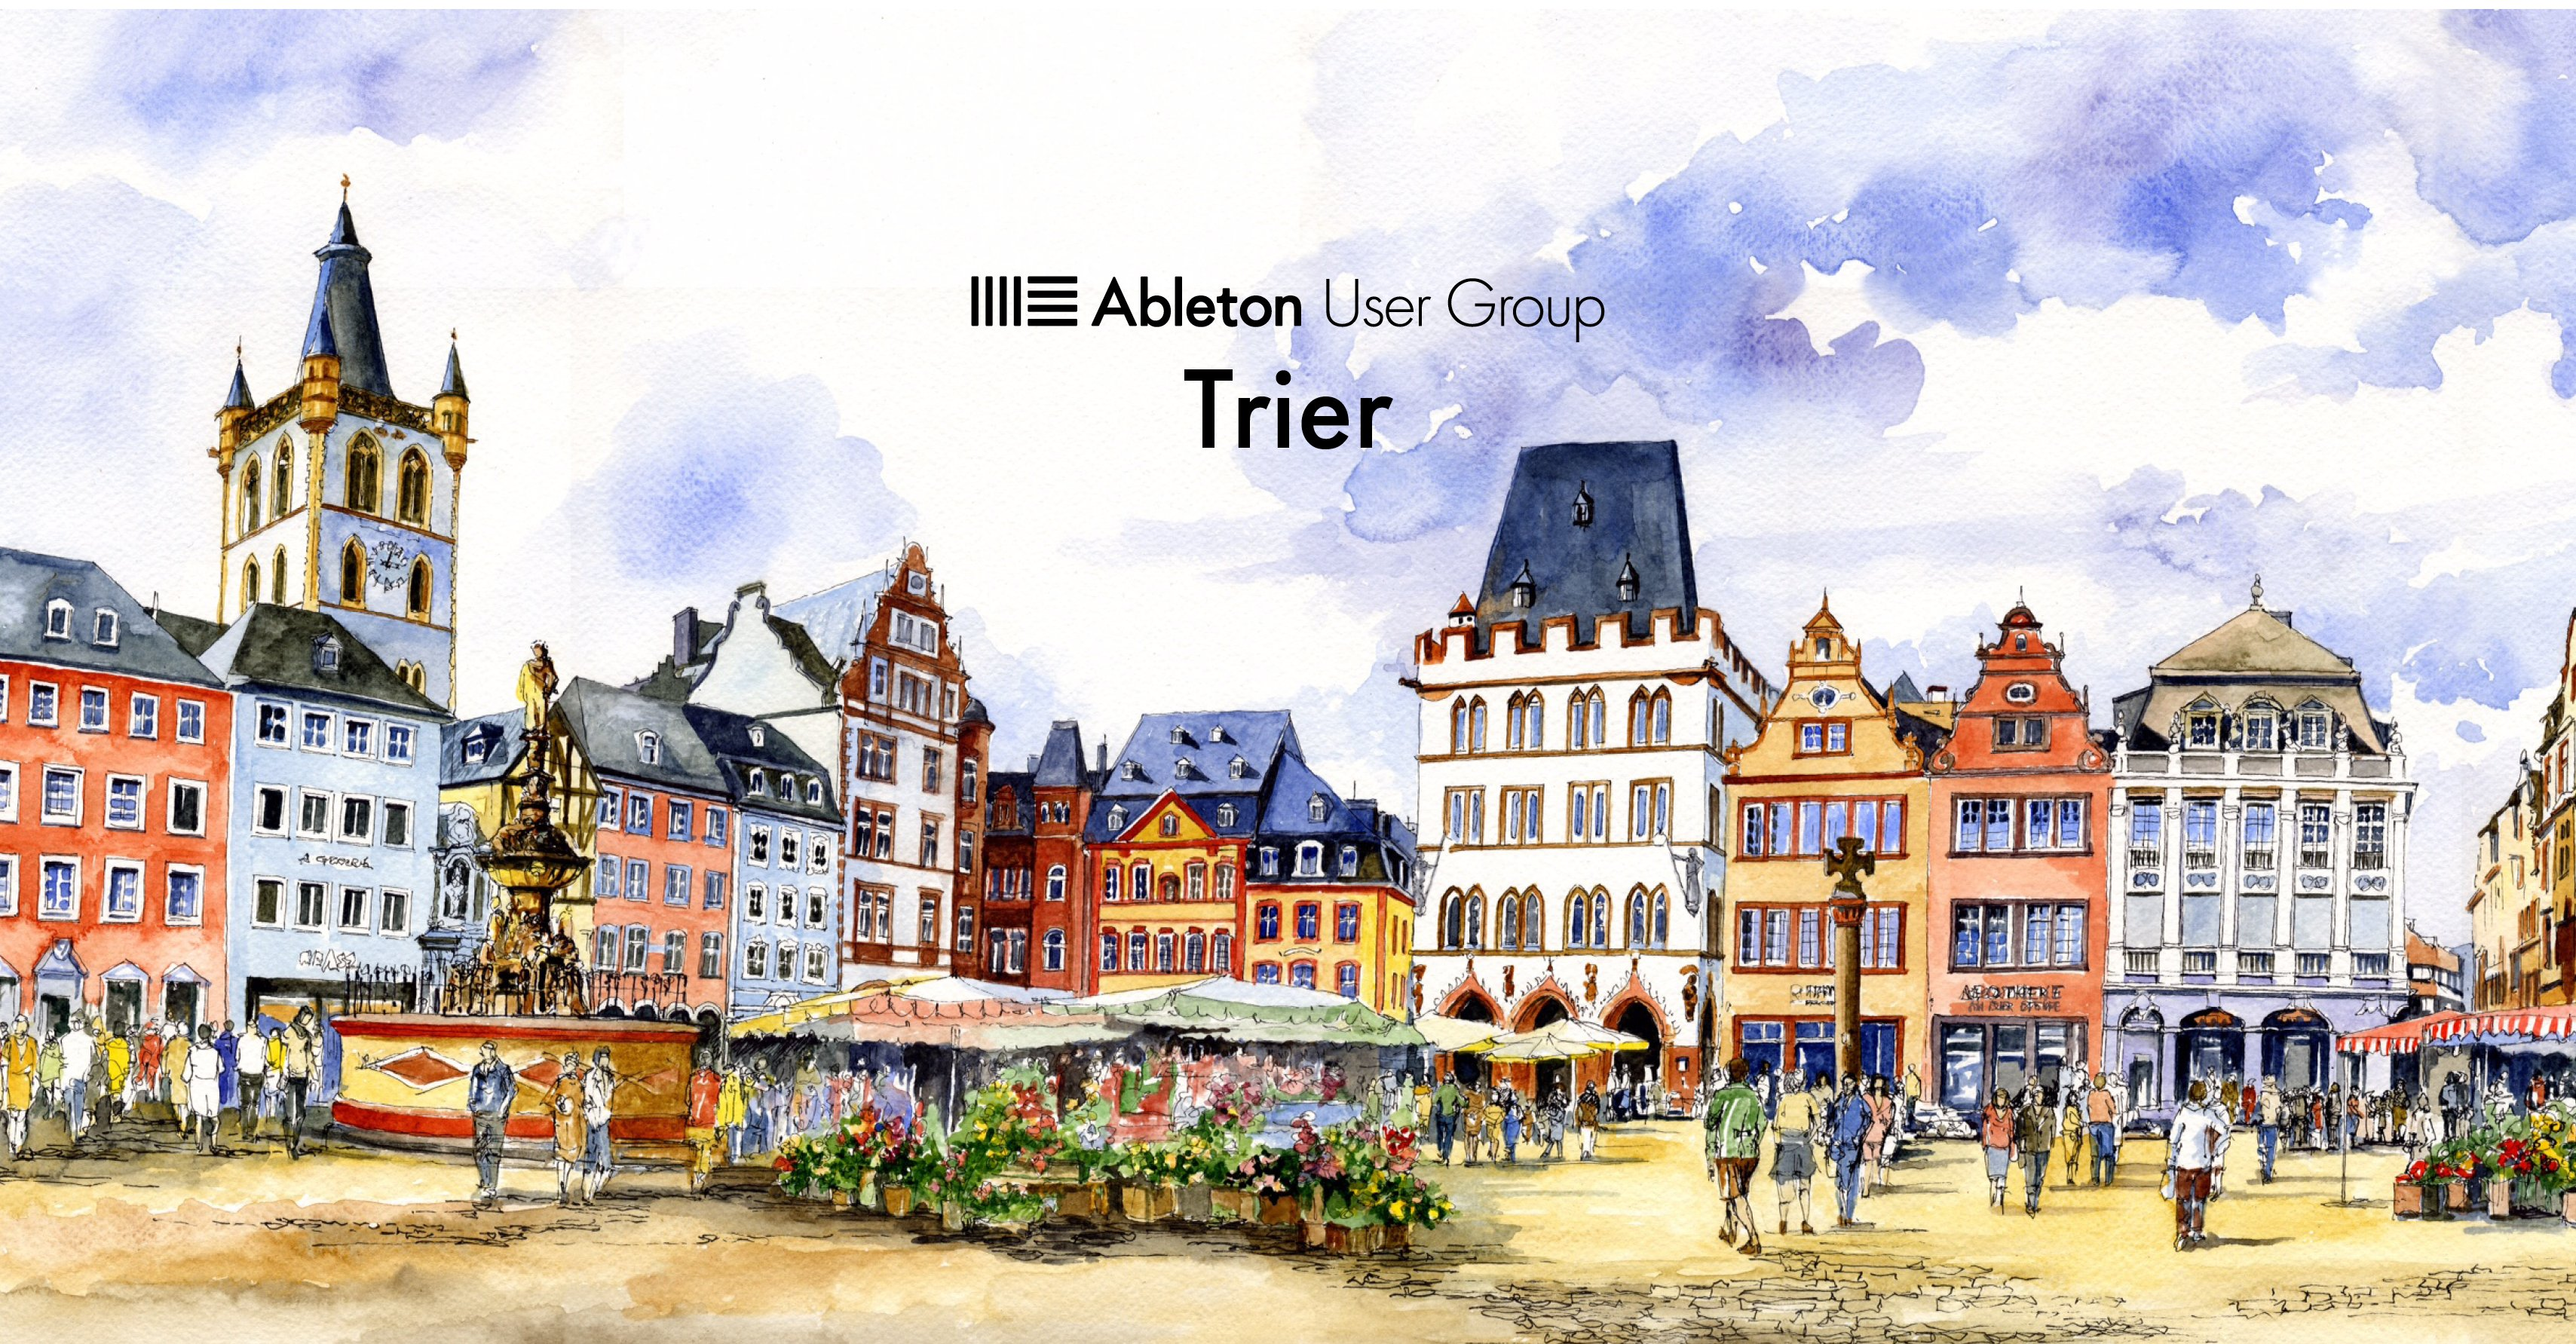 Trier Ableton User Group Facebook Banner.png